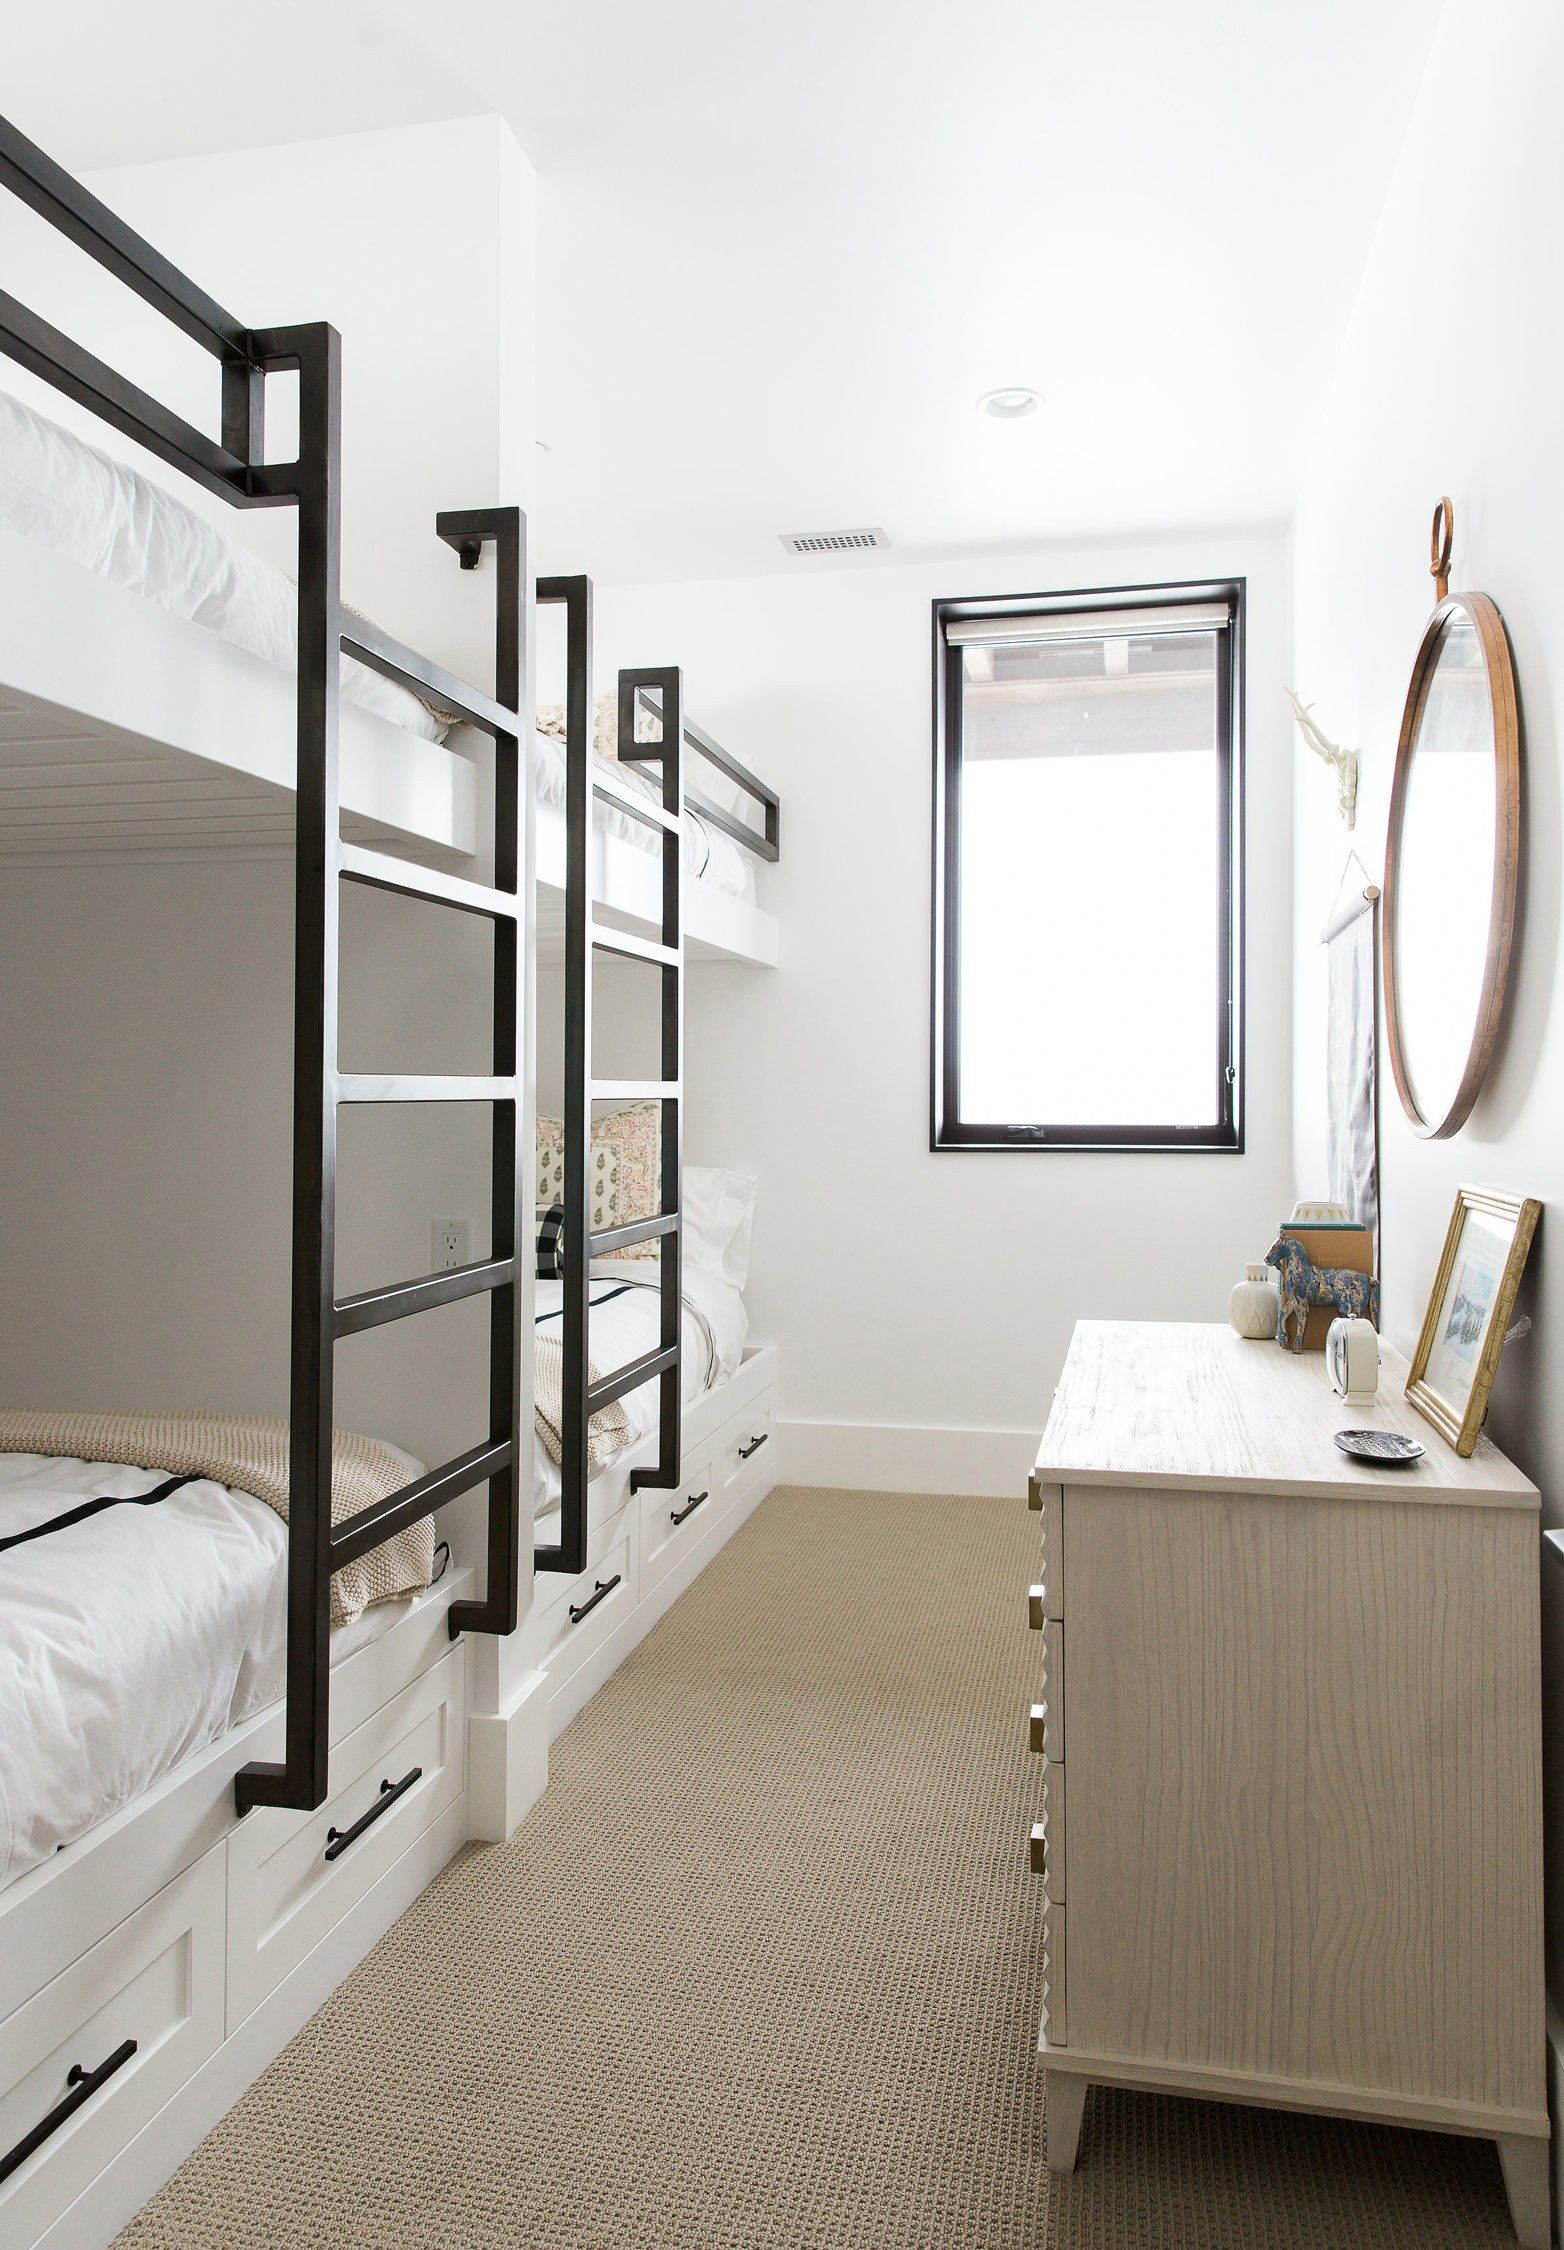 studio mcgee gives a utah mountain home a modern edge | bunk bed